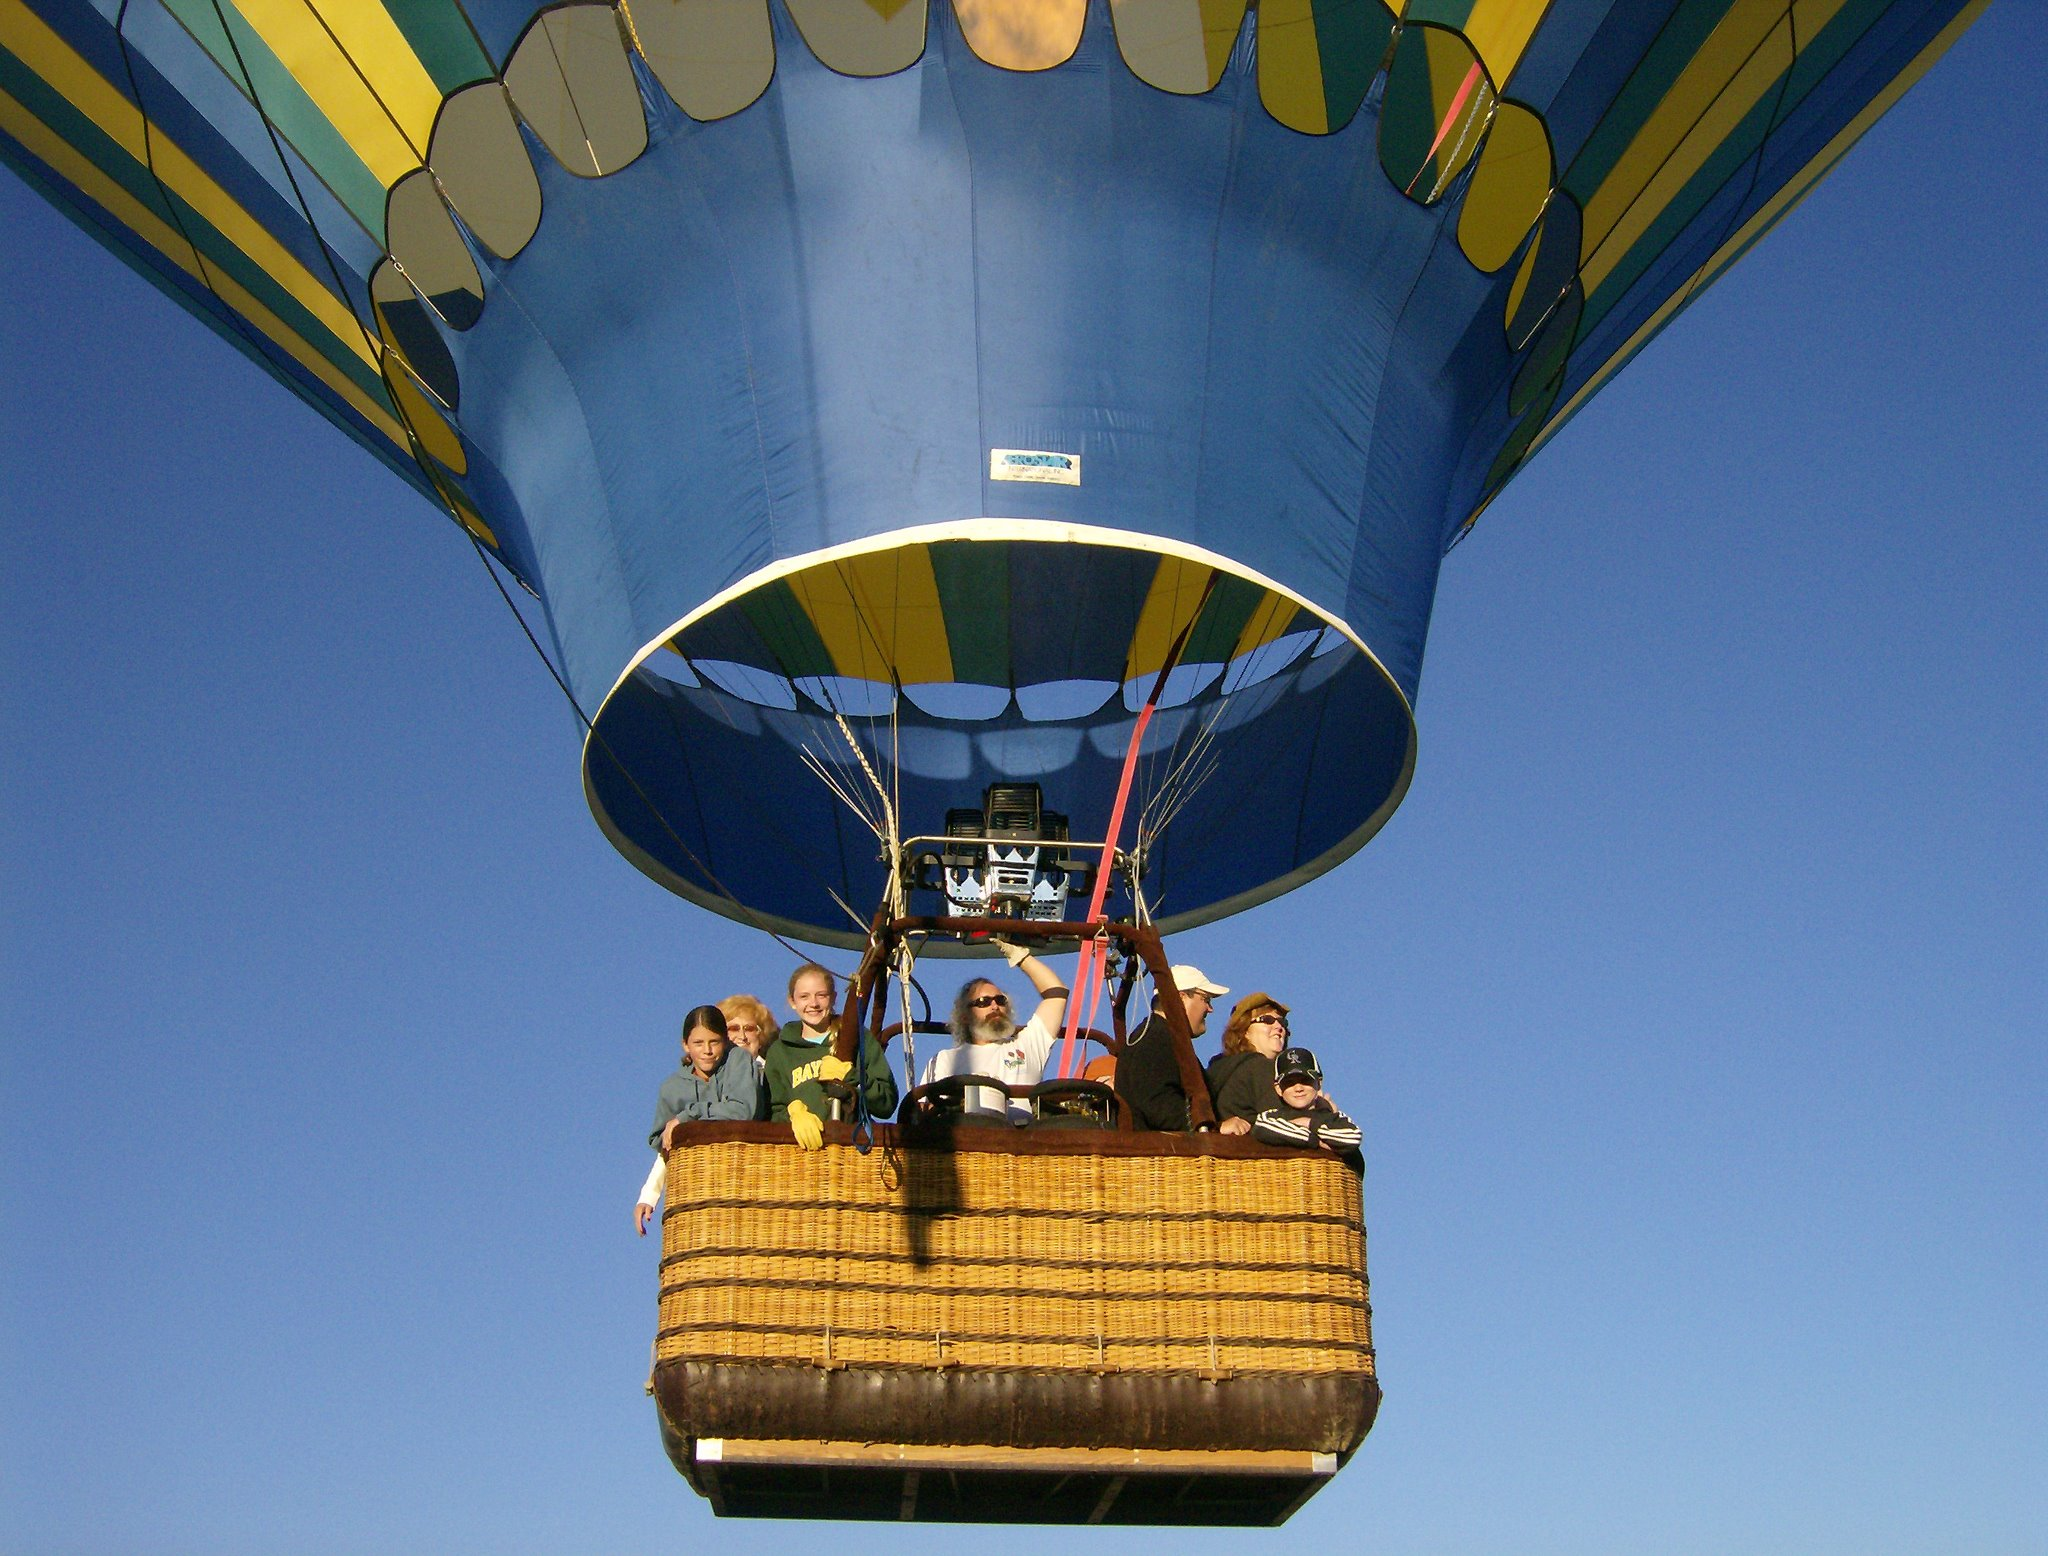 Grand Adventures Balloon Tours